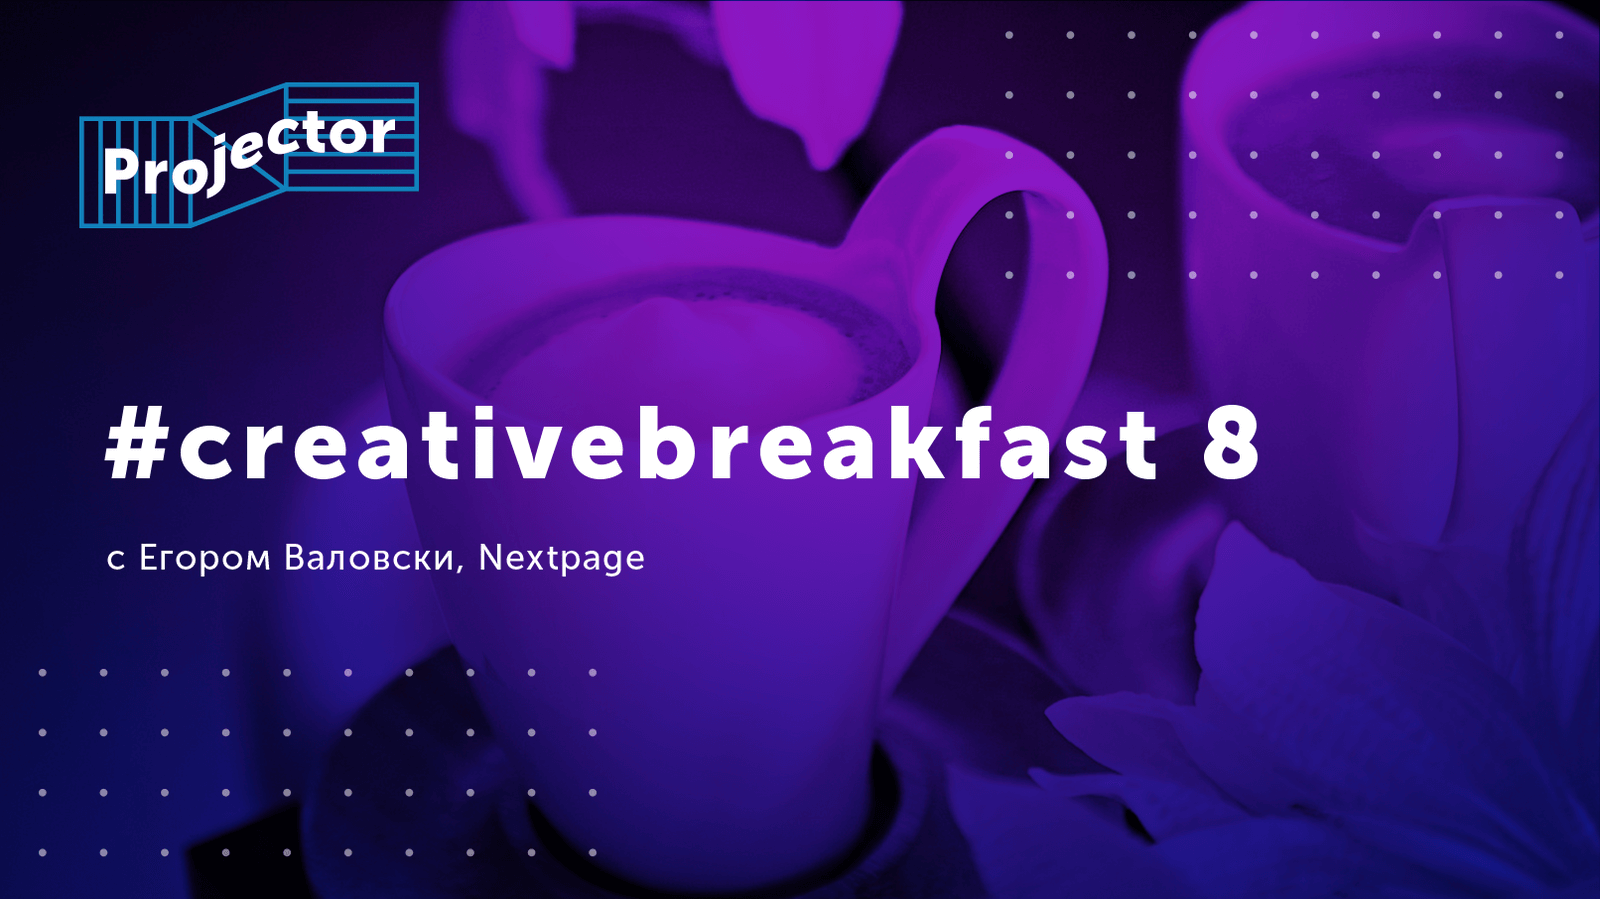 Creativebreakfast#8